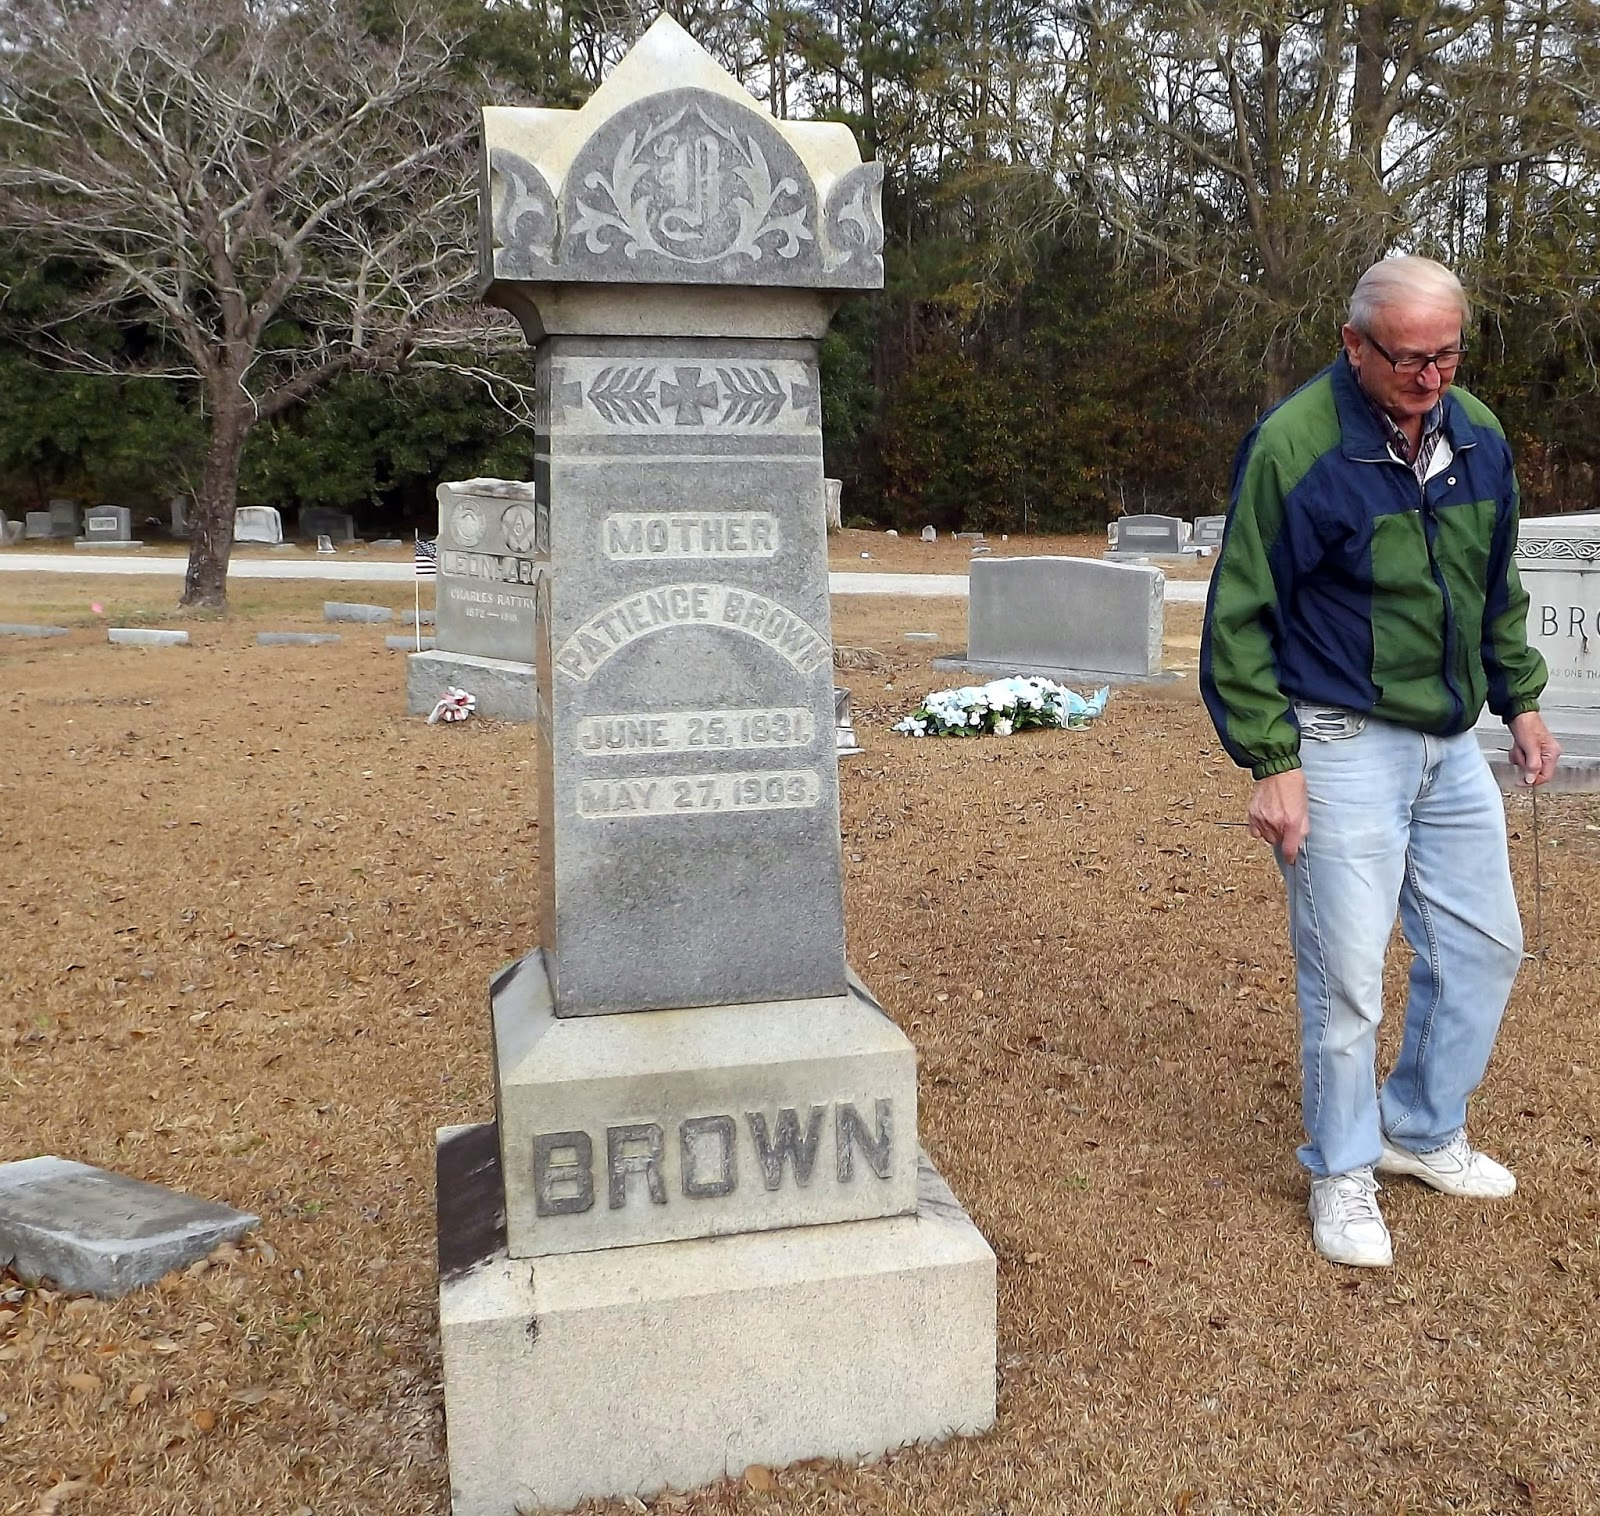 Patience Brown Gravemarker Chadbourn, NC Photo by Mike Hollingsworth